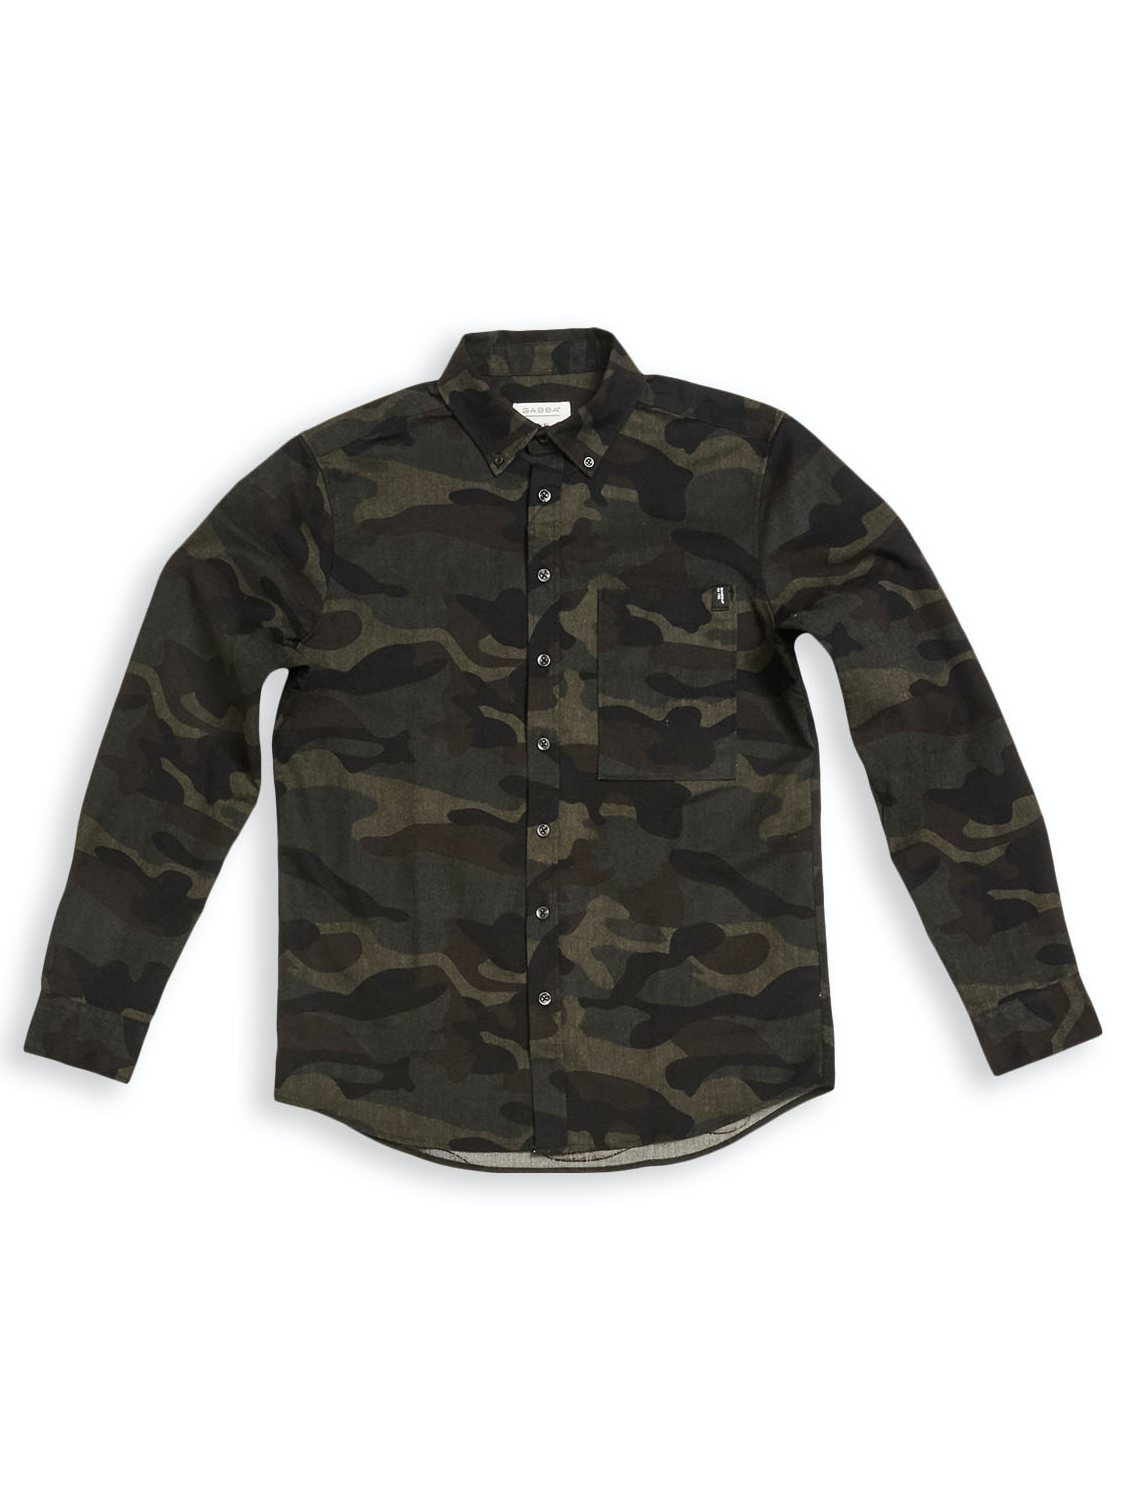 GABBA ATLANTA ABSTRACT CAMOUFLAGE SHIRT BLACK | GATE 36 Hobro